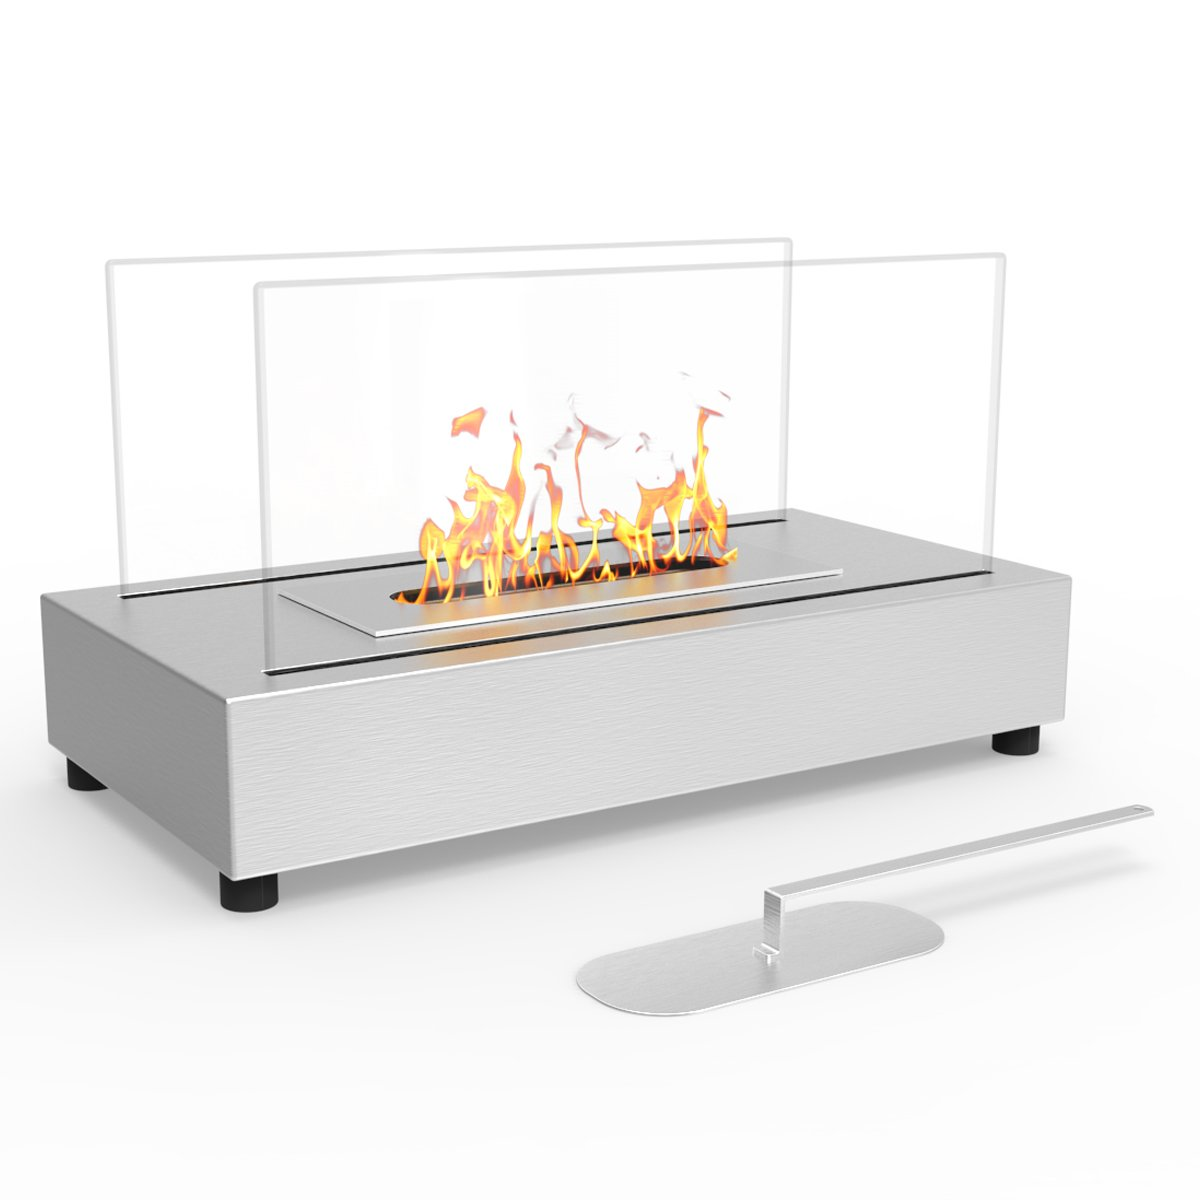 Regal Flame Avon Tabletop Portable Bio Ethanol Fireplace in Stainless Steel by Regal Flame